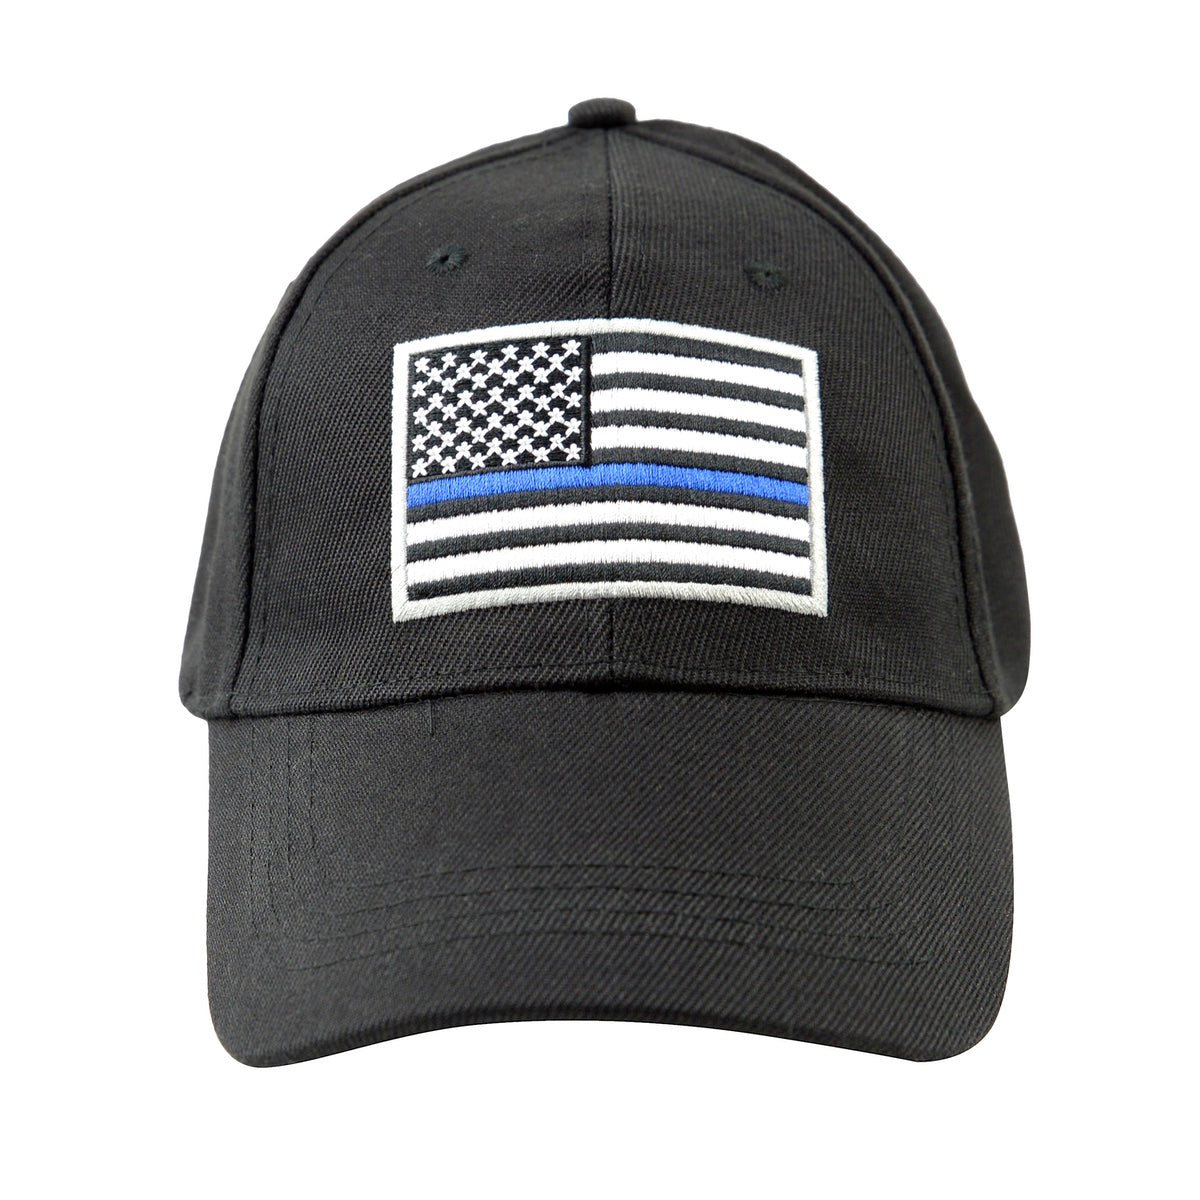 Embroidered Thin Blue Line Hat Police Officer Lives Matter Us American Treasuregurus